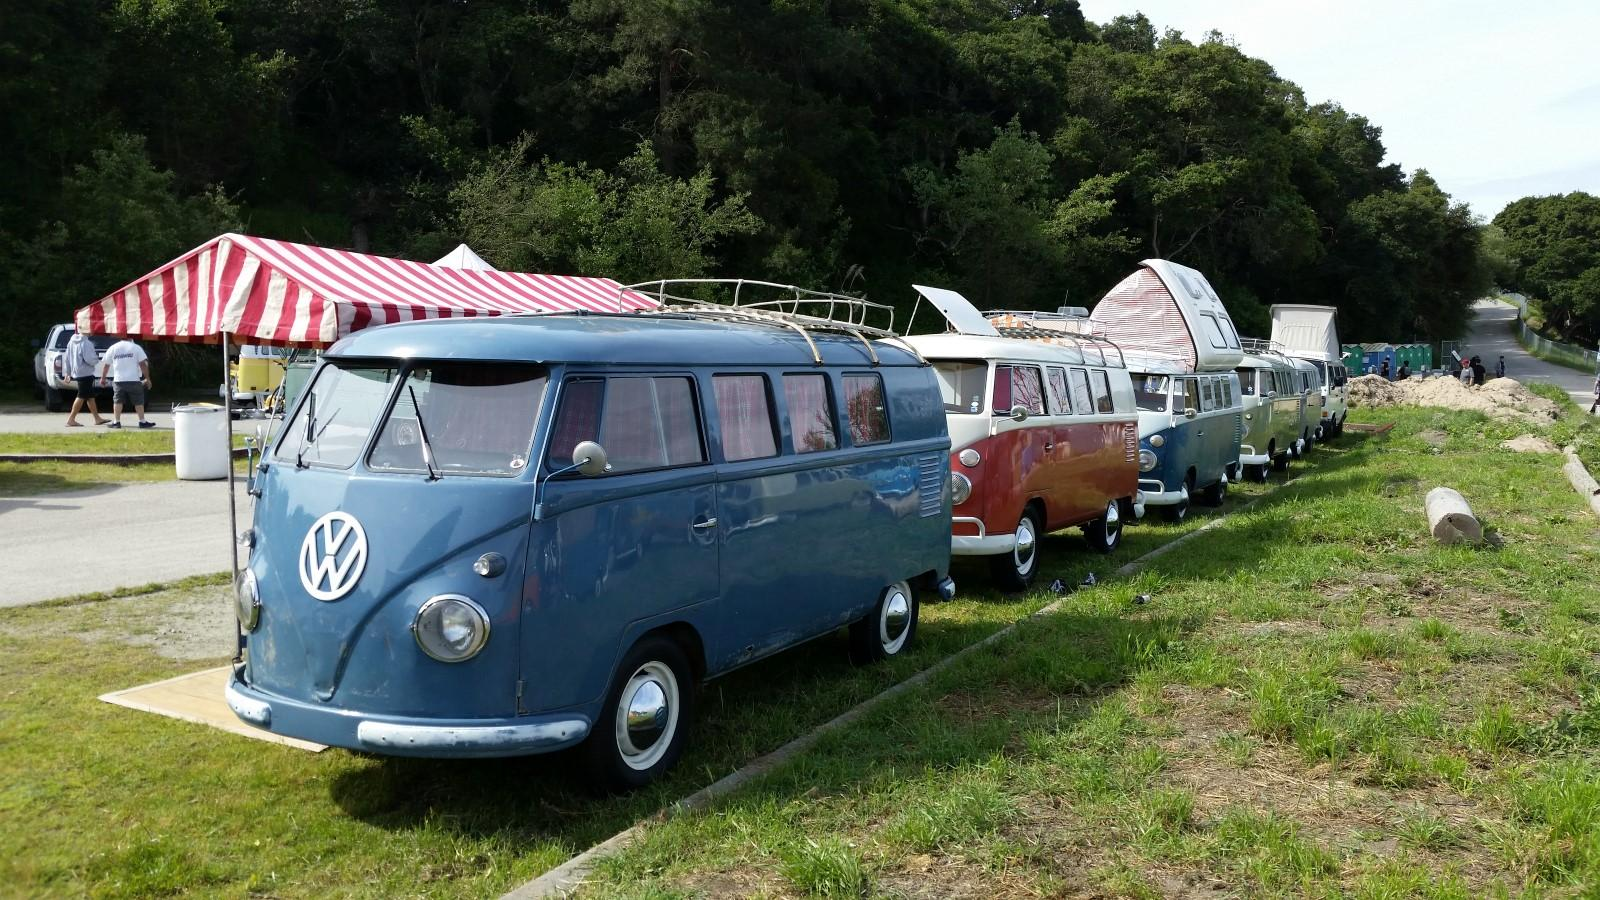 Westy line up at Red Barn 2017